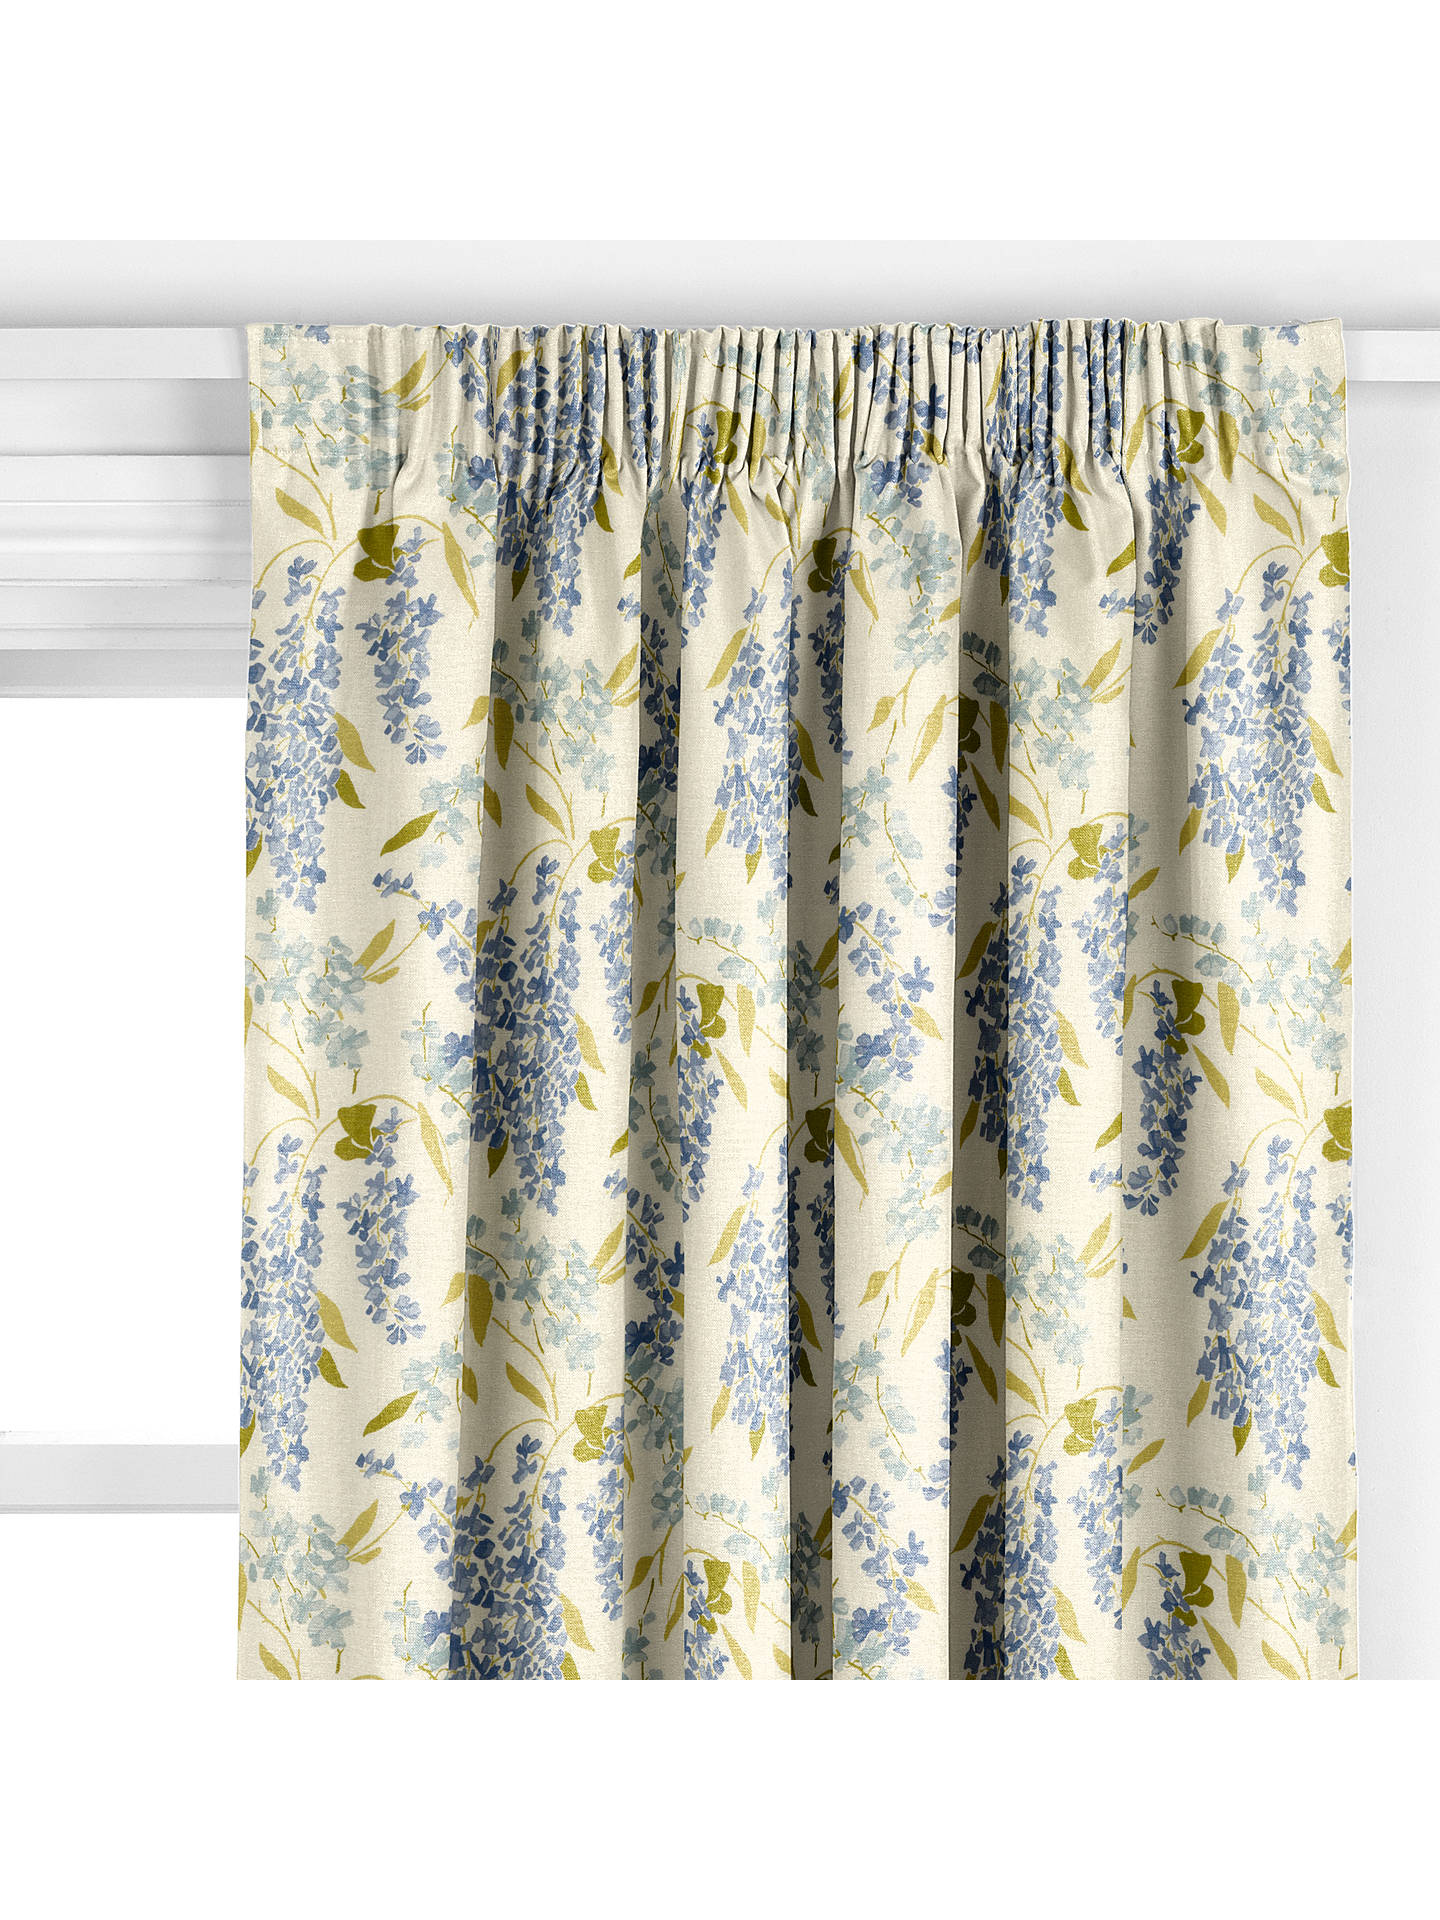 BuyJohn Lewis Partners Wisteria Curtain Blue Online At Johnlewis